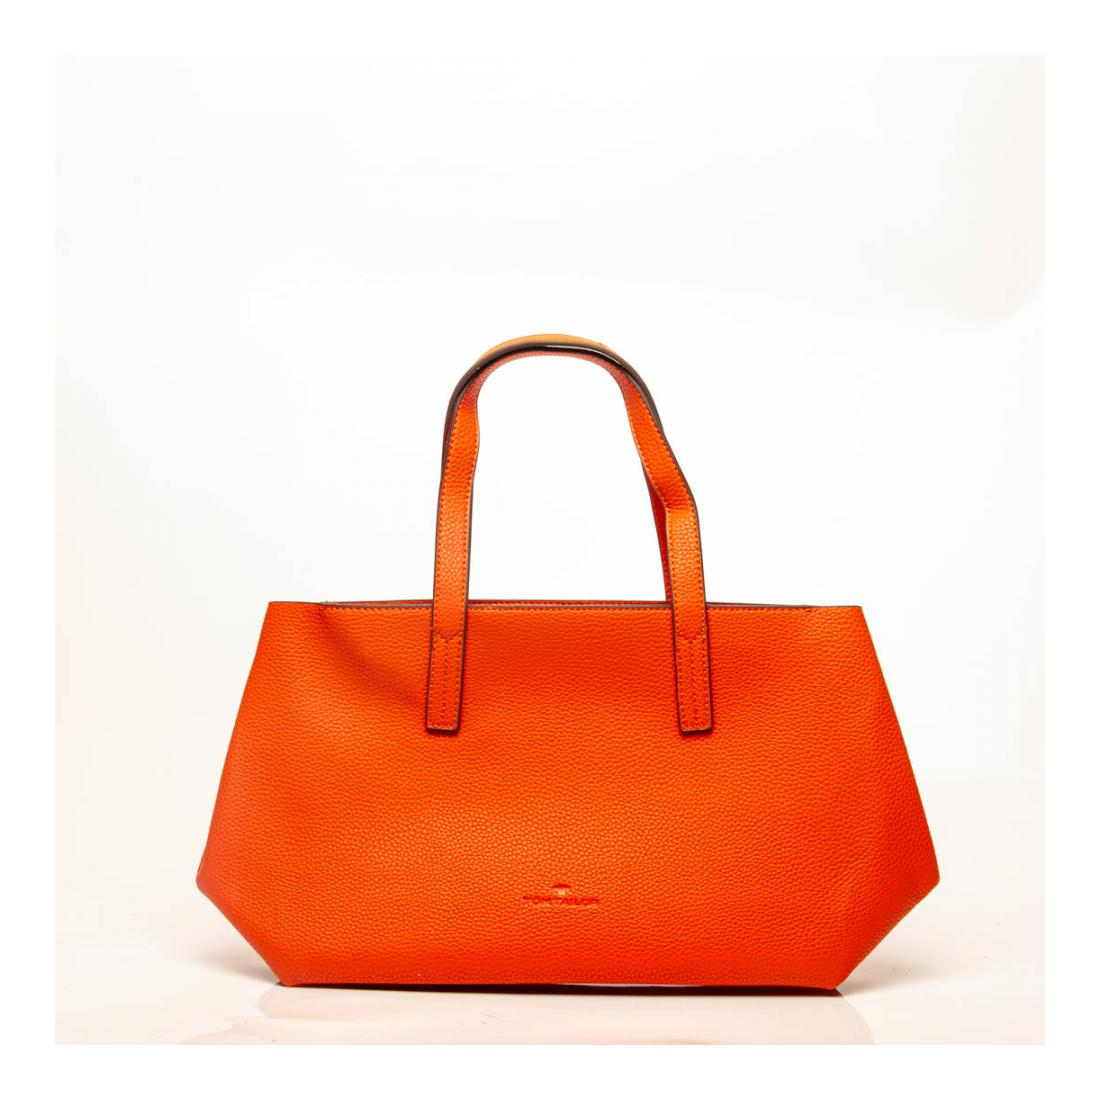 Tom Tailor Tasche Marla Shopper